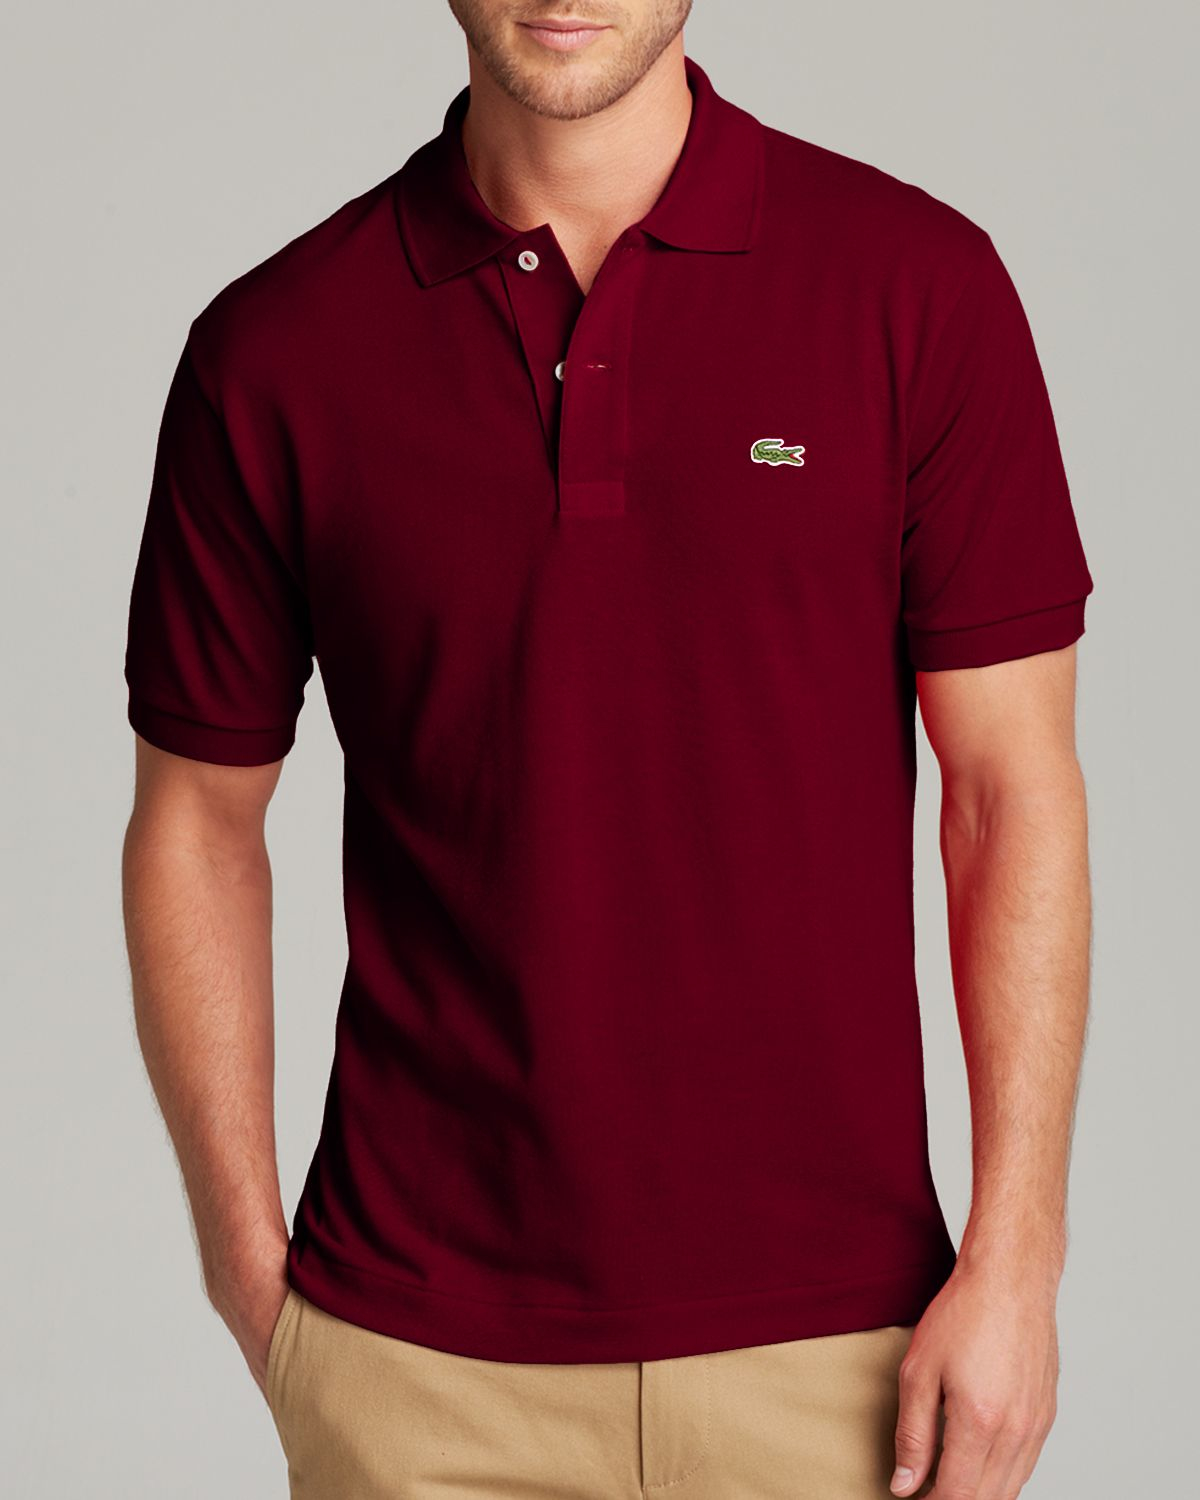 1a33bca04e4b2 Lyst - Lacoste Short Sleeve Piqué Polo Shirt - Classic Fit in Purple ...